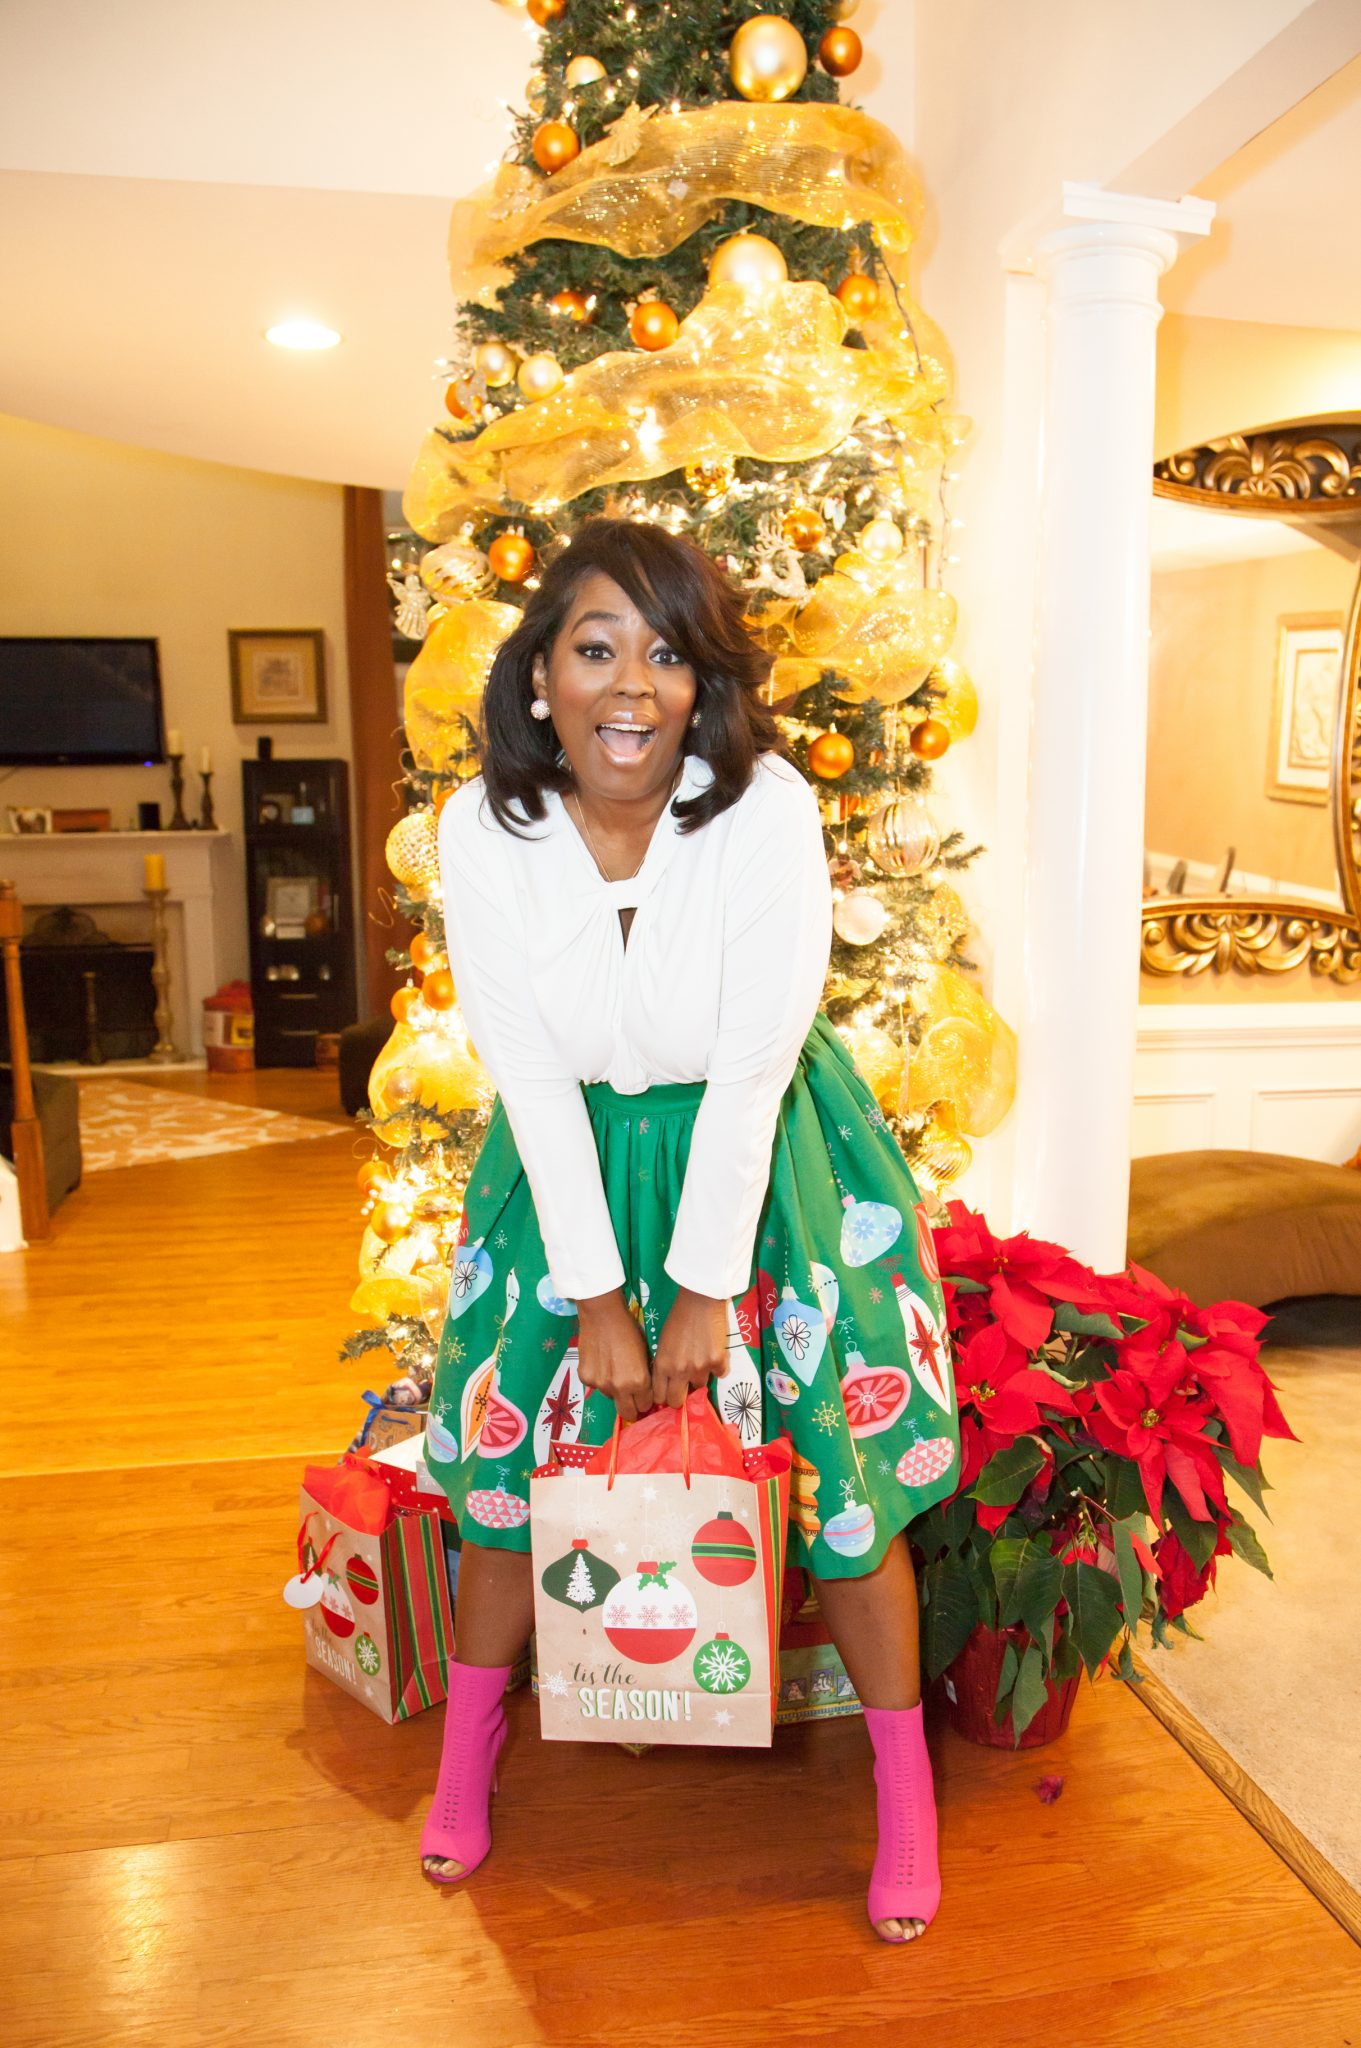 My Style: Pinup Couture Bella Ornament Border Skirt